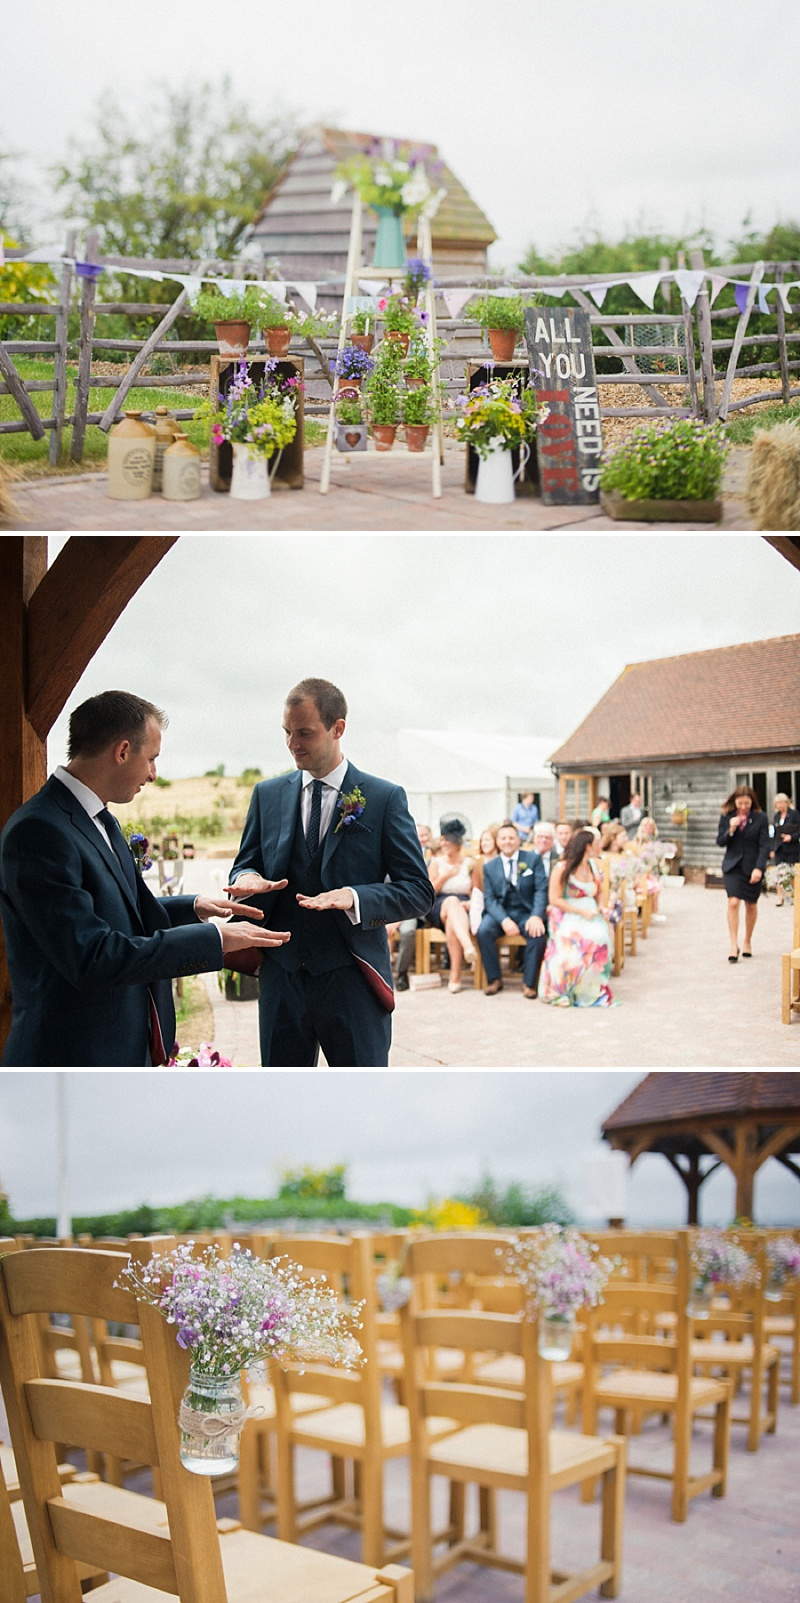 Vintage Inspired Barn Wedding At The Ferry House Inn Kent, Bride In Balta By Pronovias, Images By Hannah-May_0003